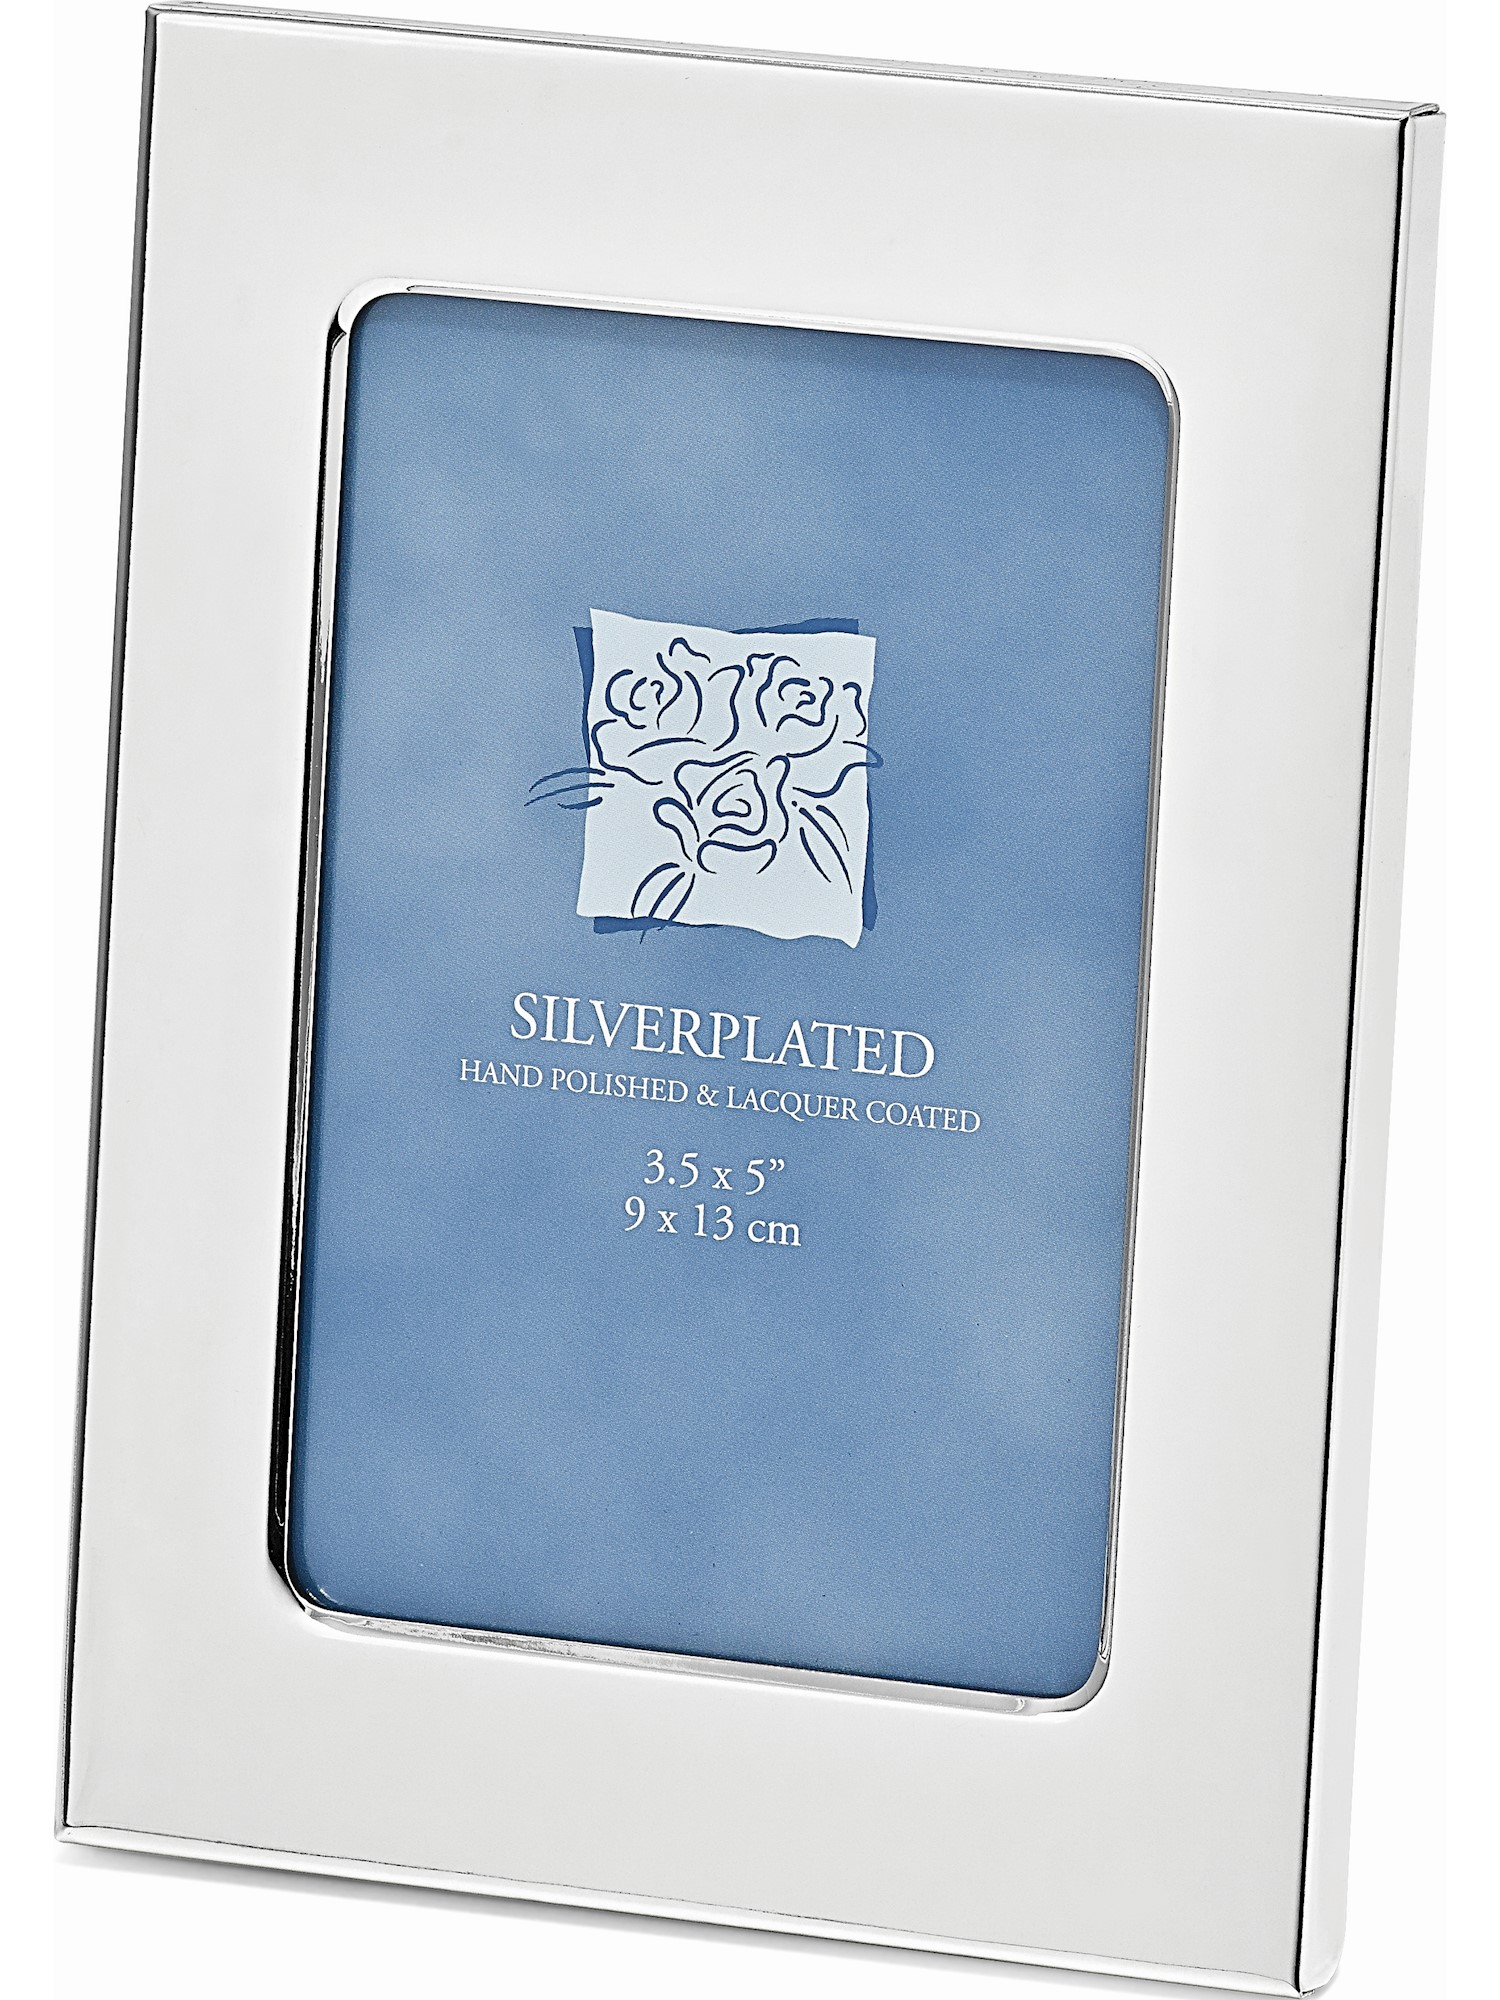 Silver-Plated Classic 3.5X5 Photo Frame Designer Jewelry by Sweet Pea